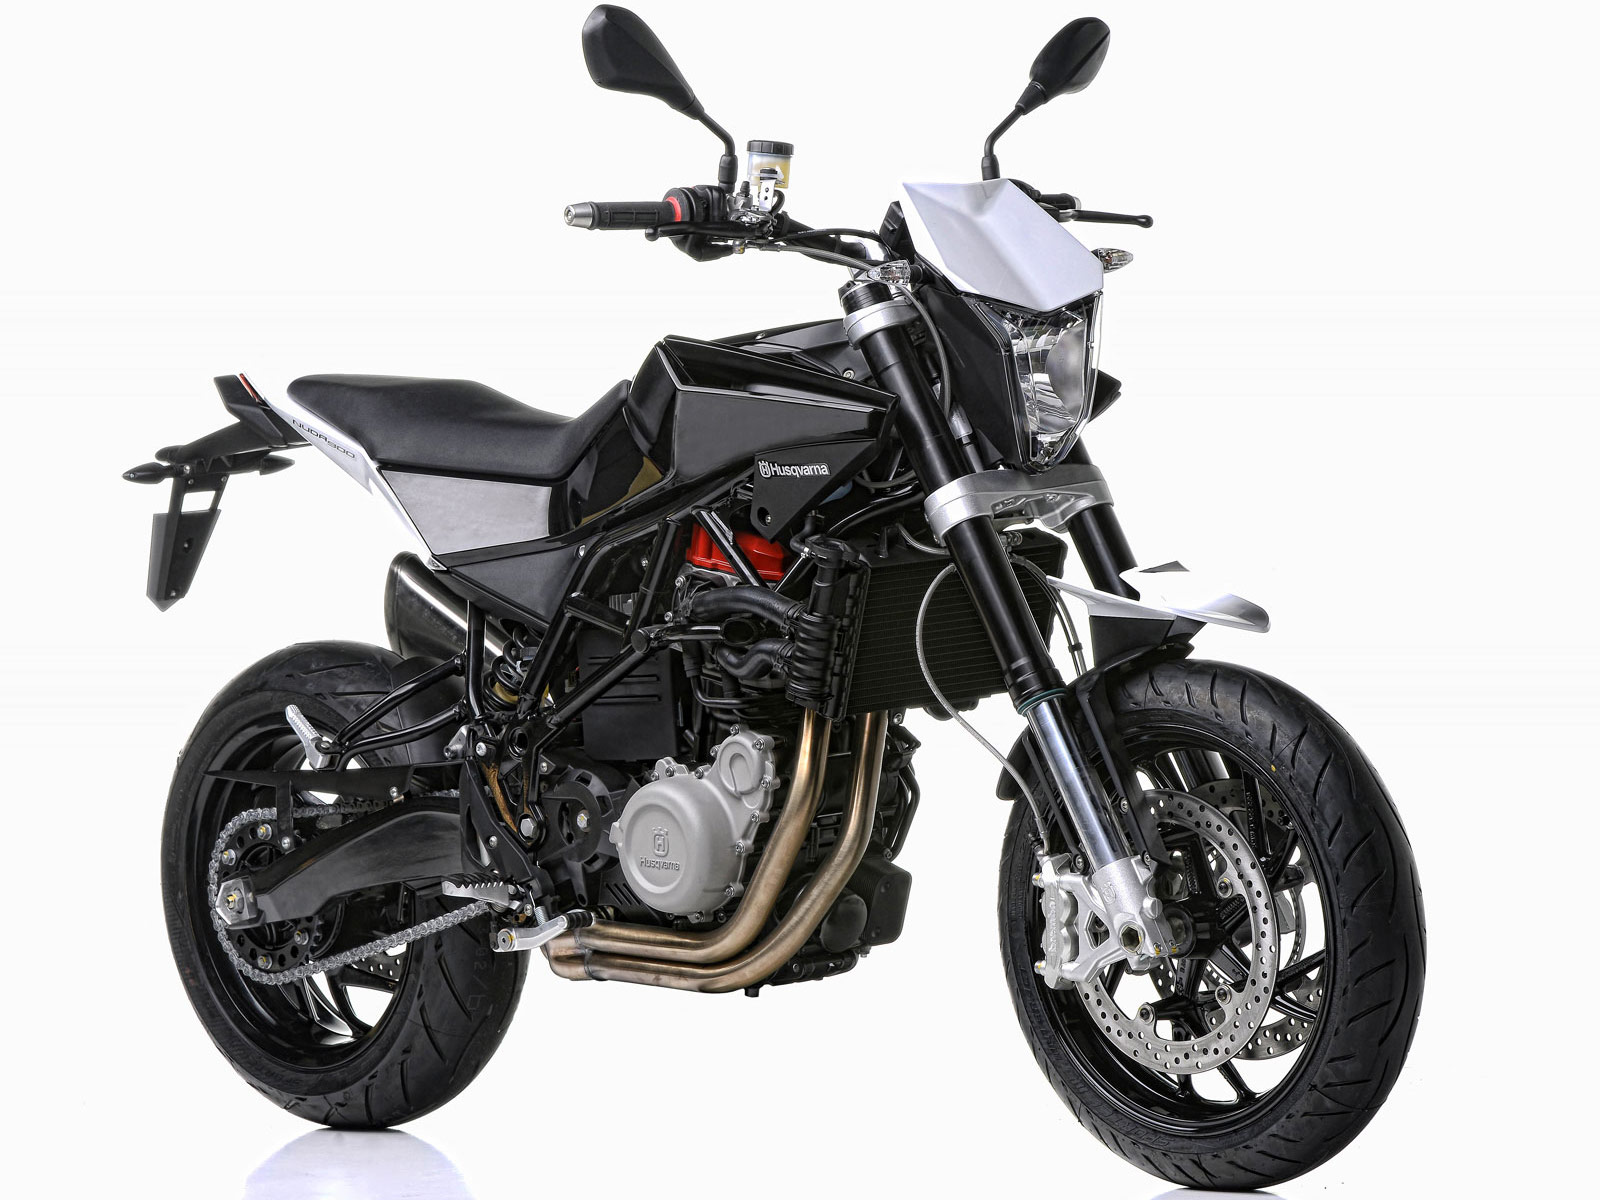 2013 husqvarna nuda 900 abs motorcycle photos specifications. Black Bedroom Furniture Sets. Home Design Ideas